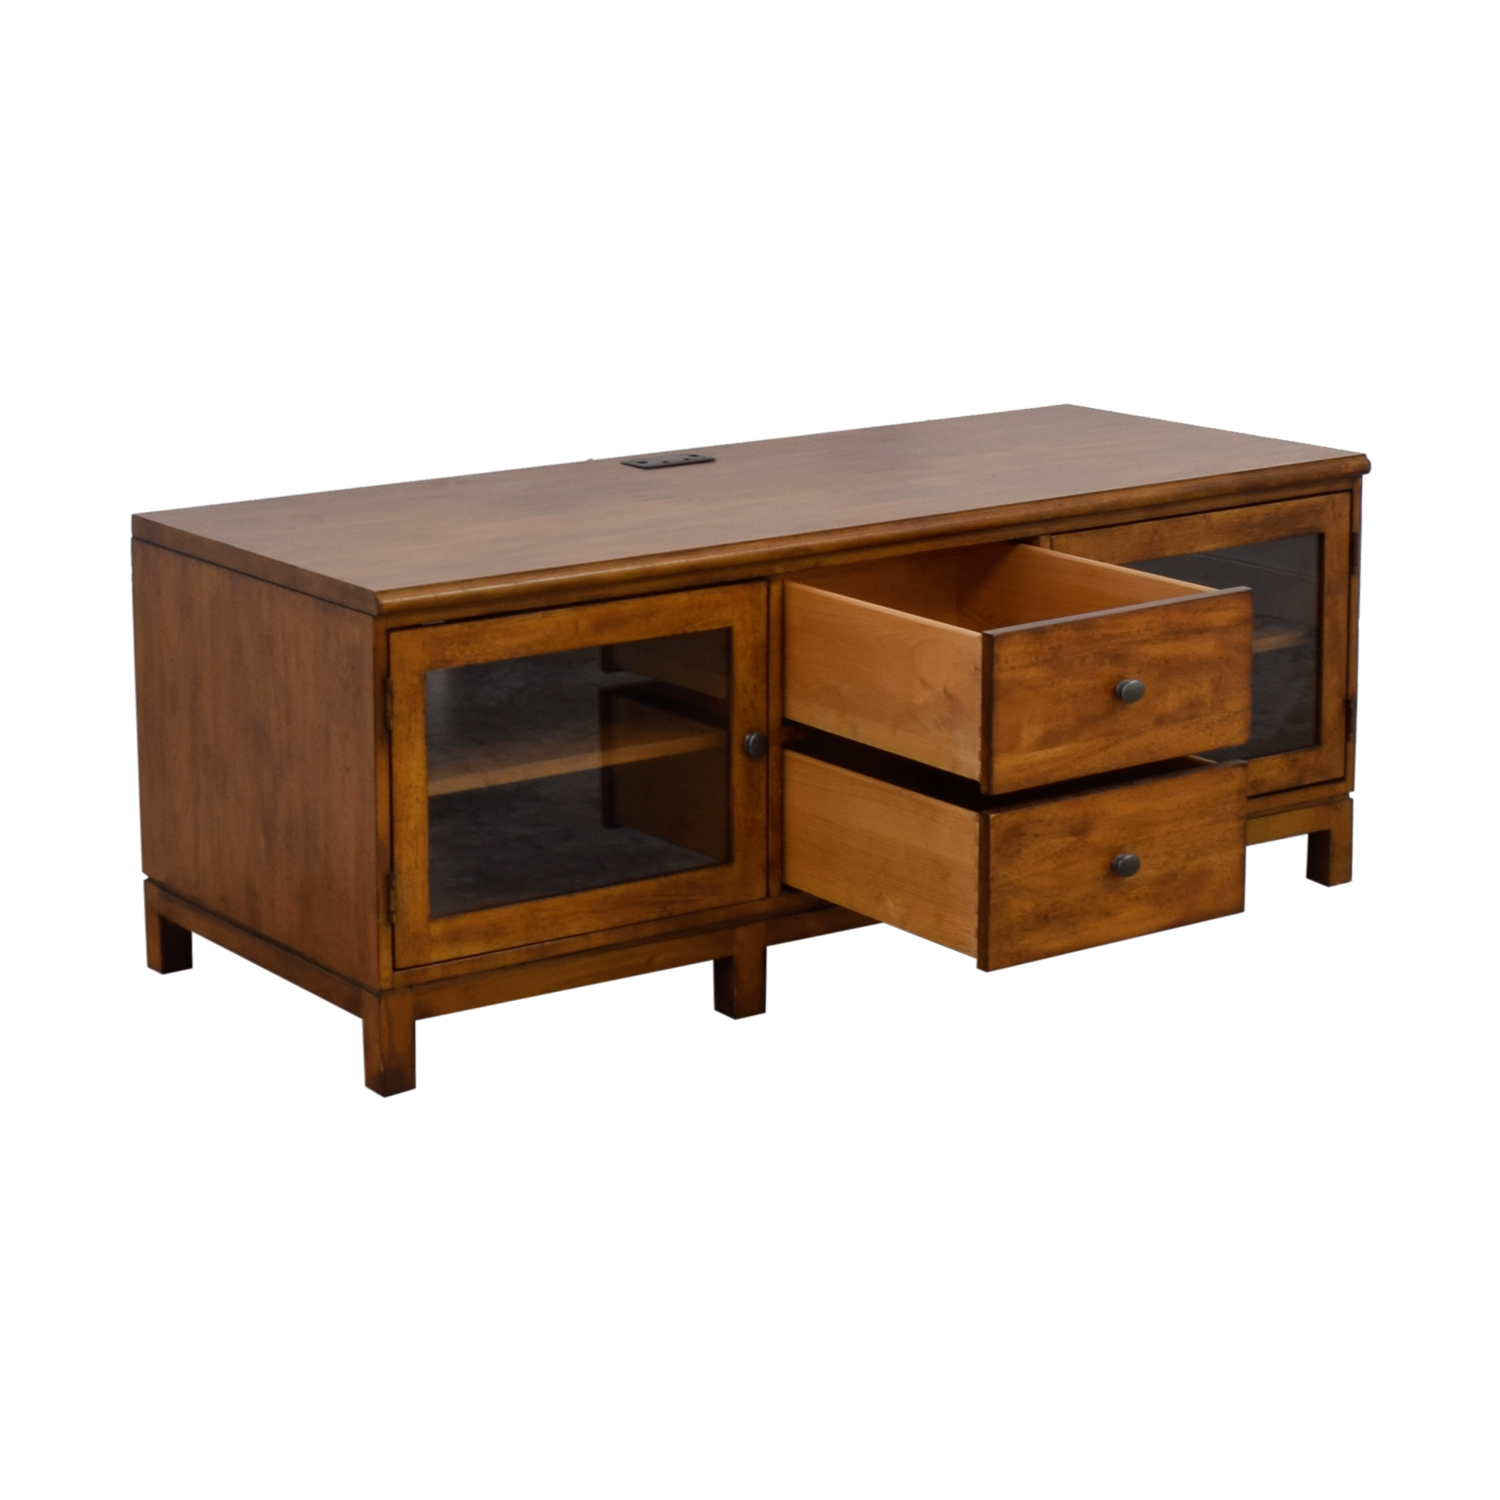 Ethan Allen Wood Two-Drawer Buffet or Media Center / Storage